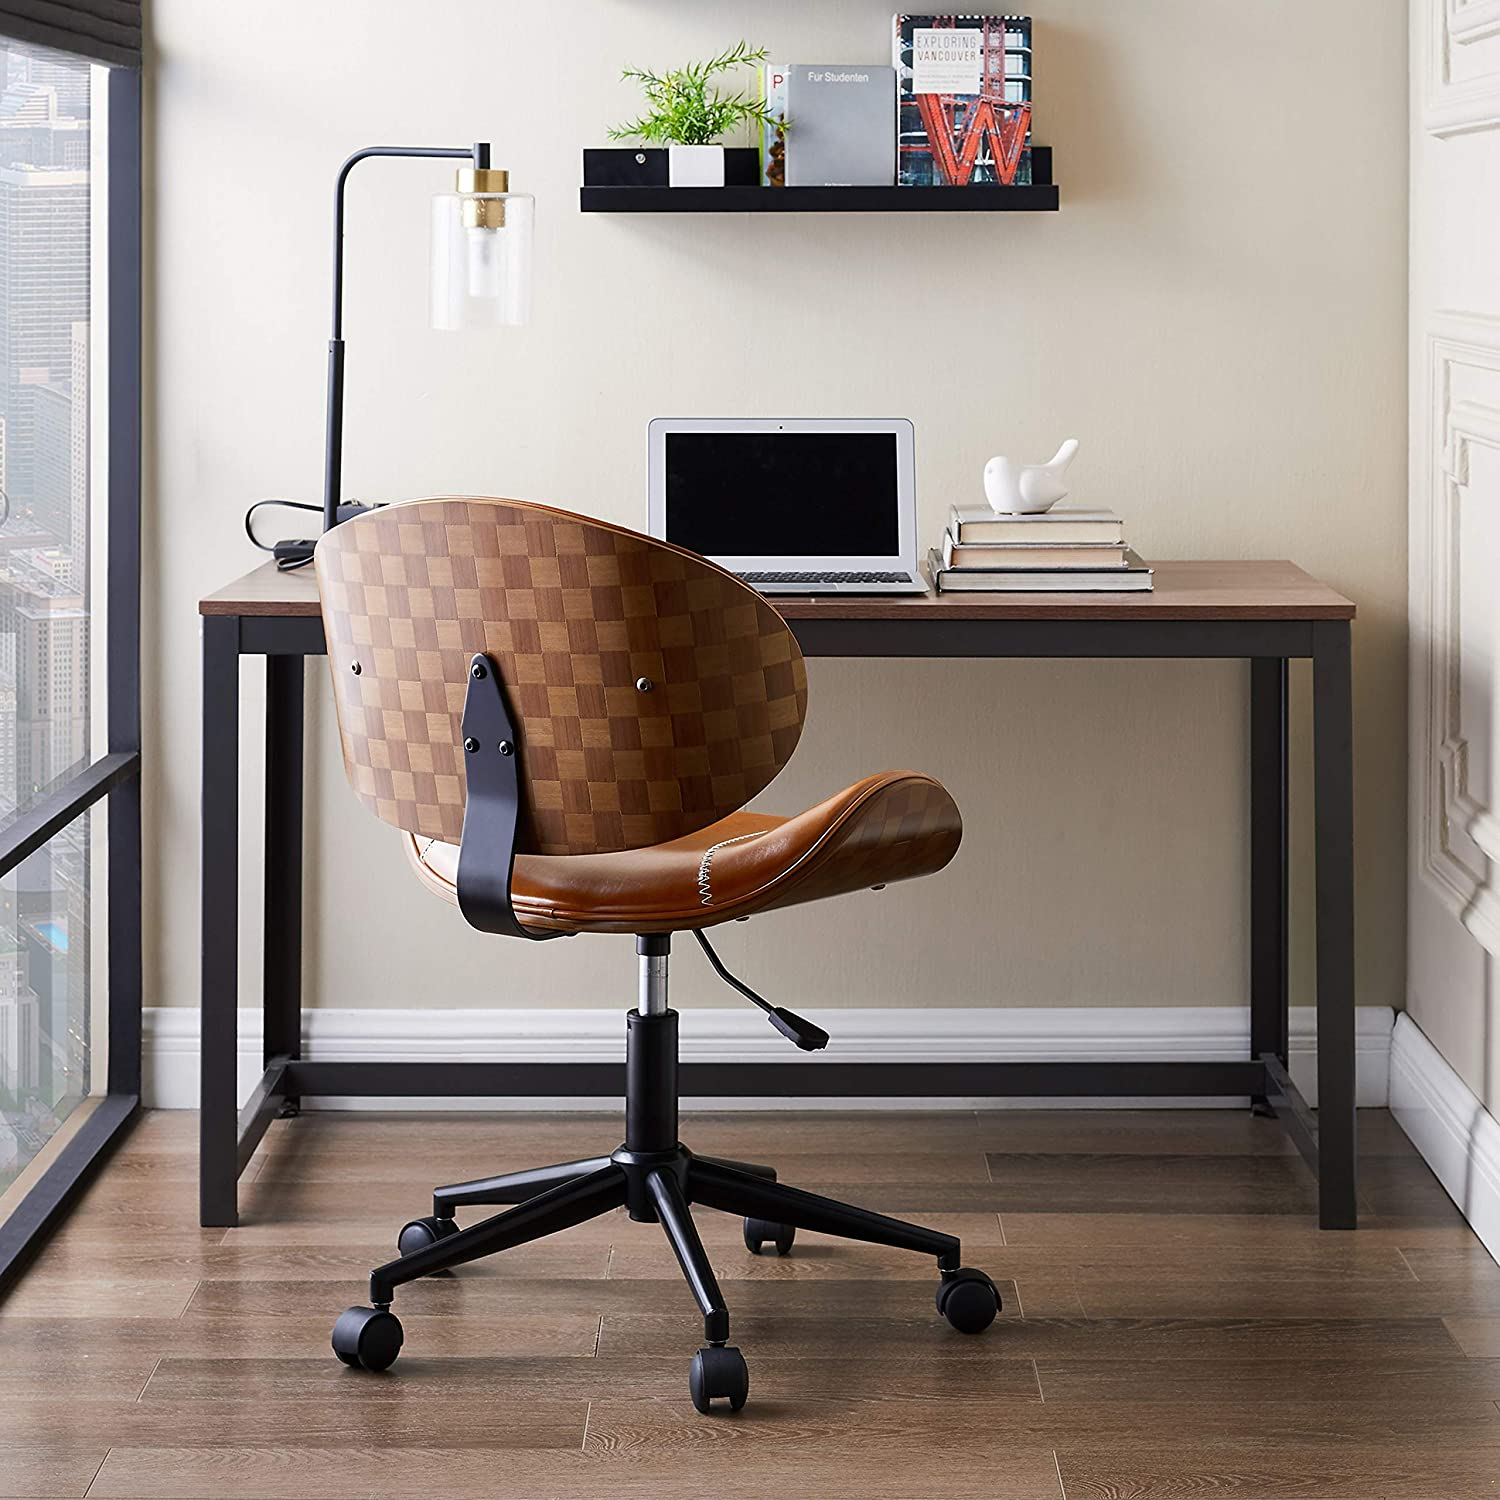 Volans mid Century Desk Chair, Modern Bentwood and Leather Swivel Task Chair with Wheels, Adjustable Height, Brown